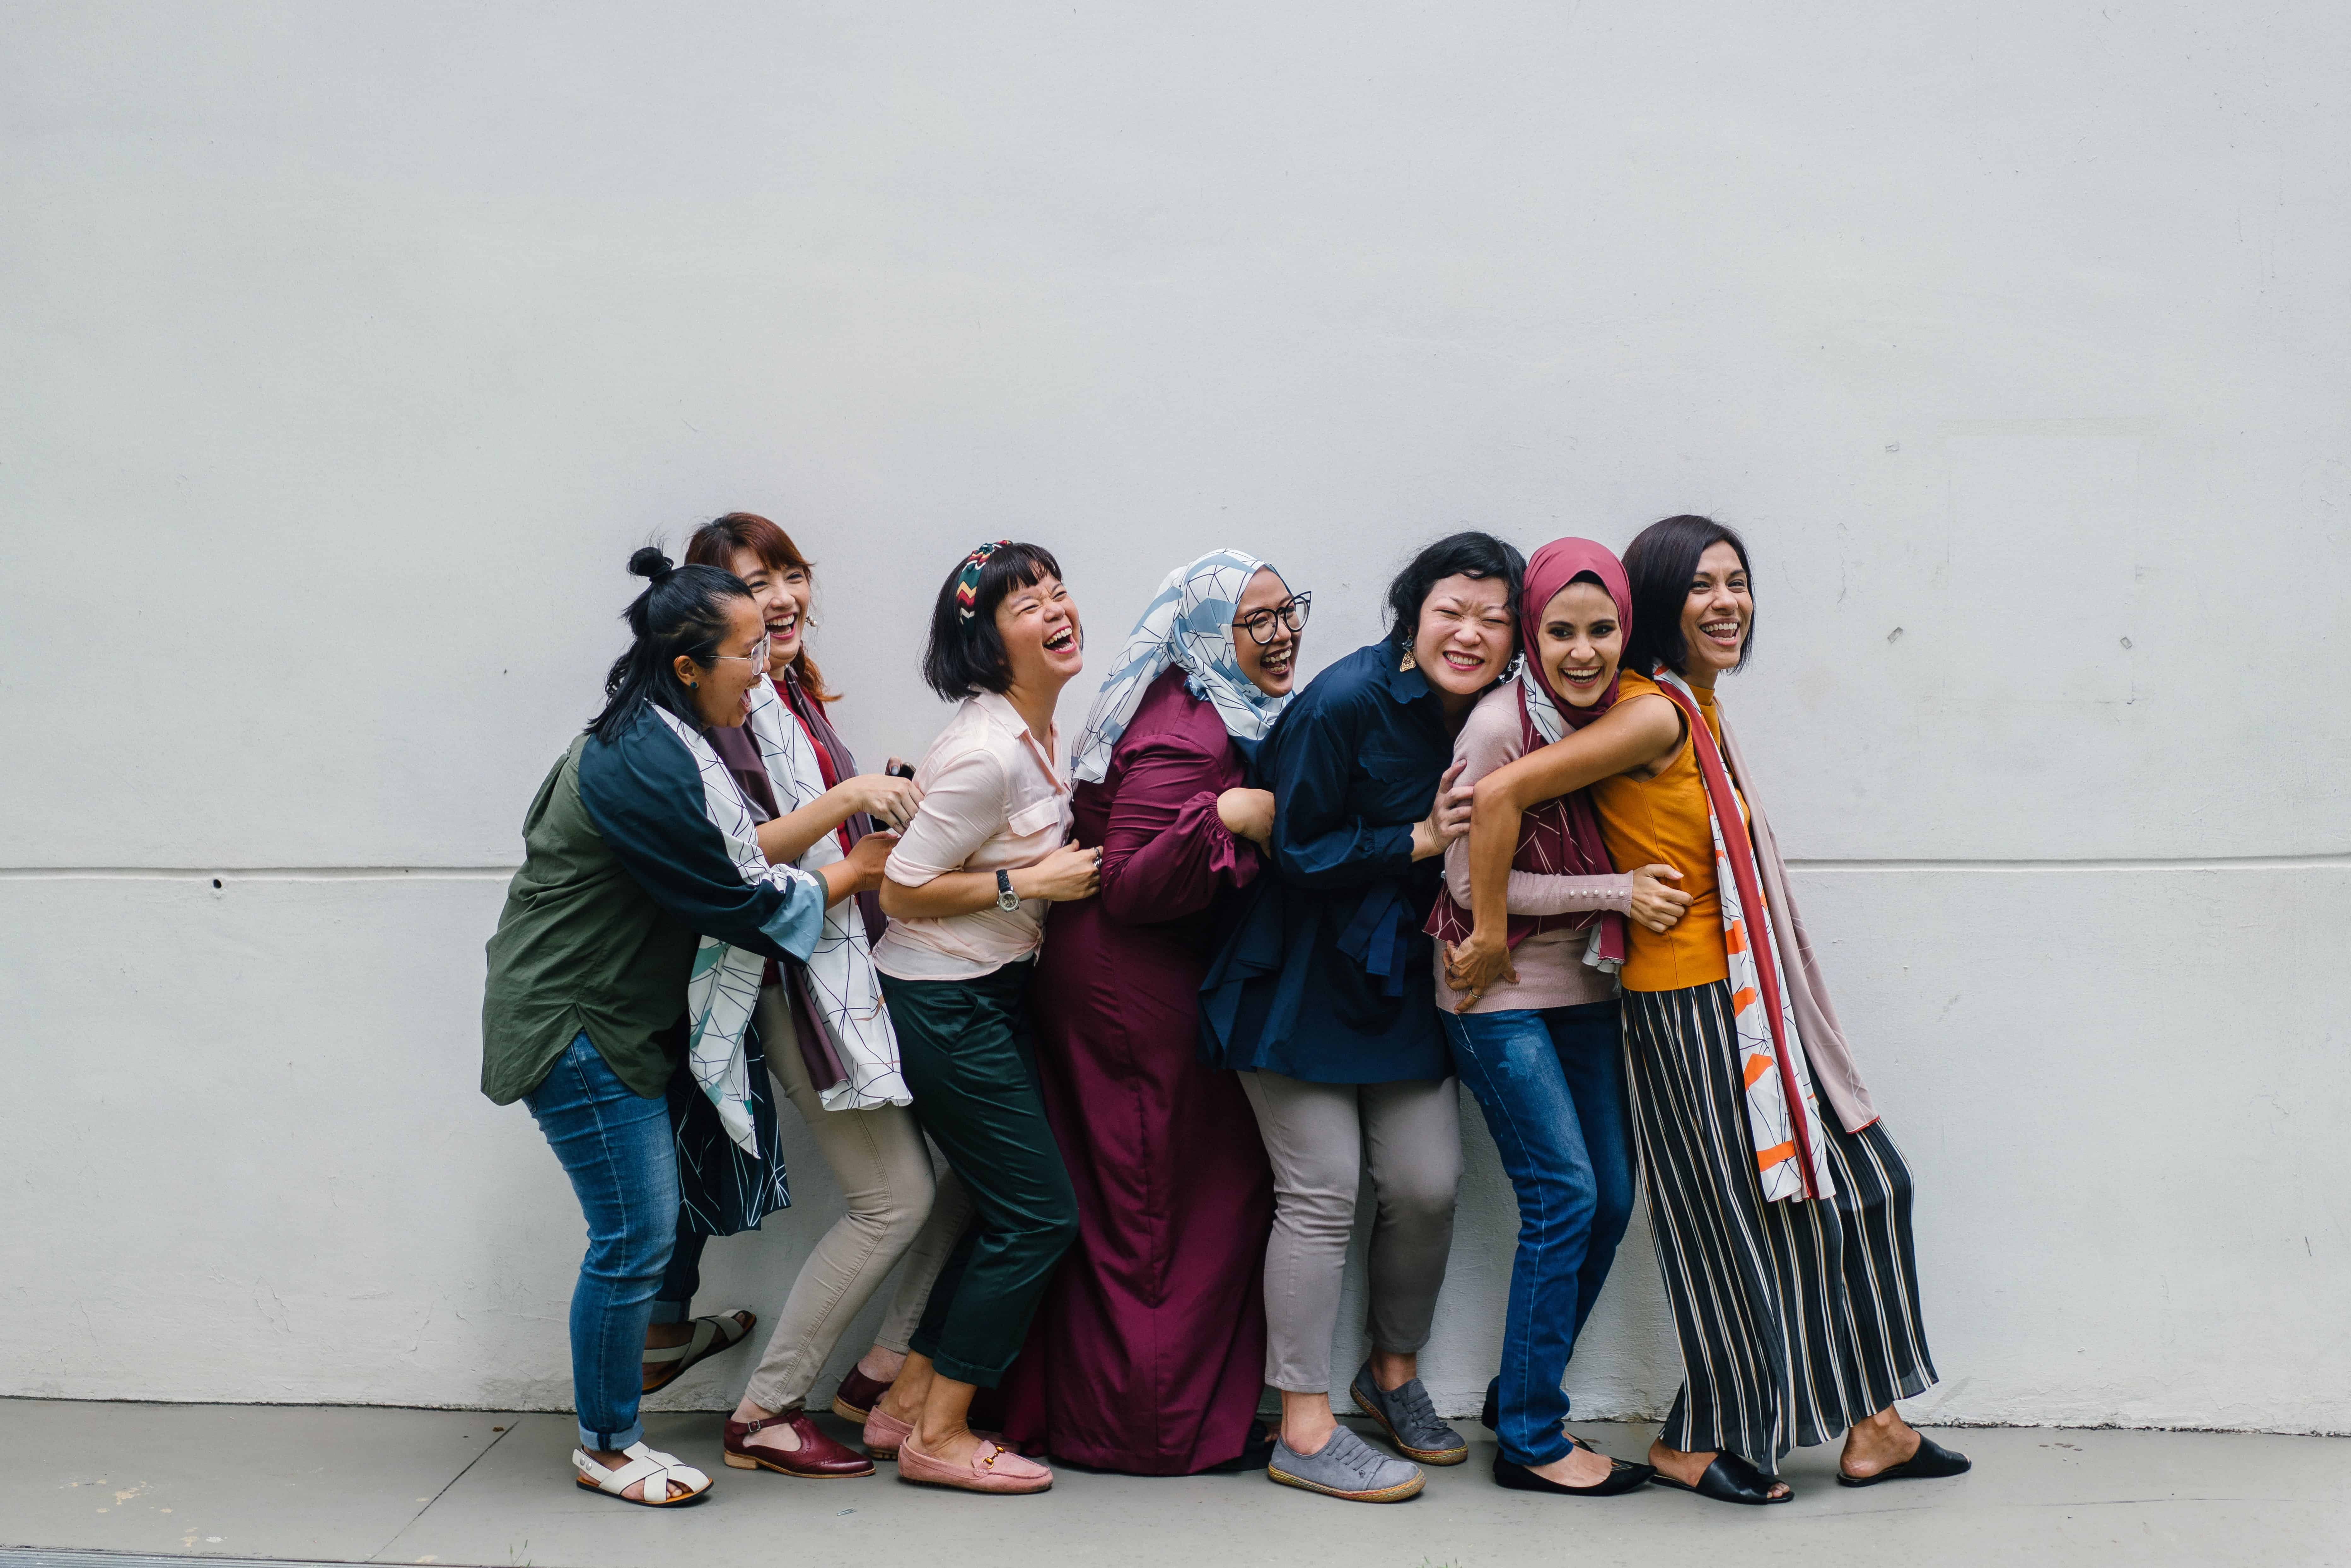 One of the benefits of learning a second language is connecting better with individuals from other cultures.